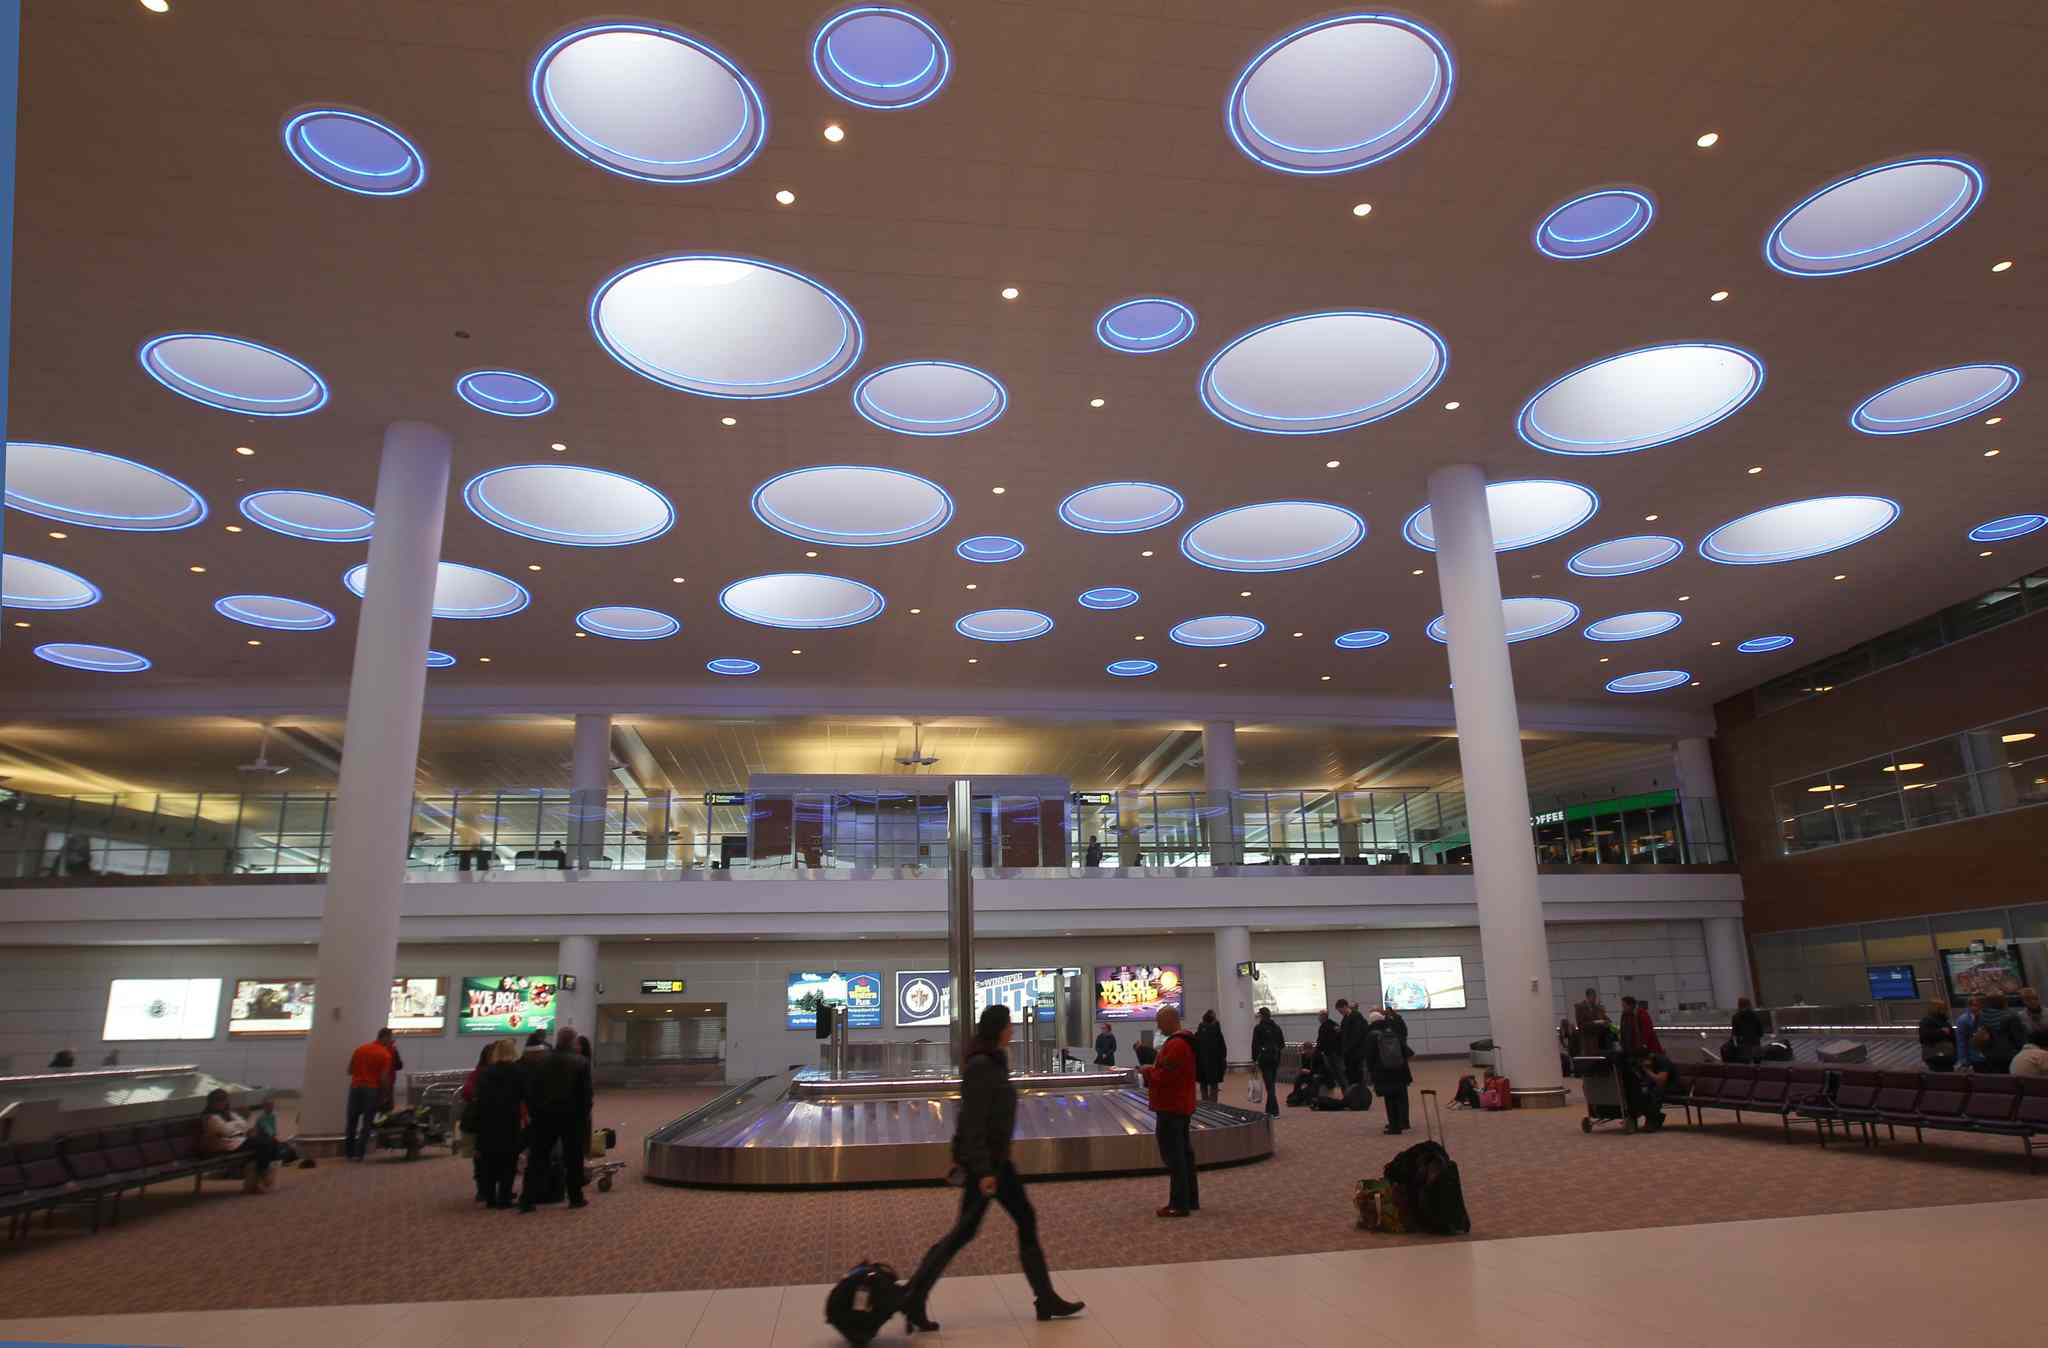 The more than 50 skylights looking down on the arrivals area at James Richardson International helped the airport earn a spot on Fodor's Travel's list of the world's most stylish airports.